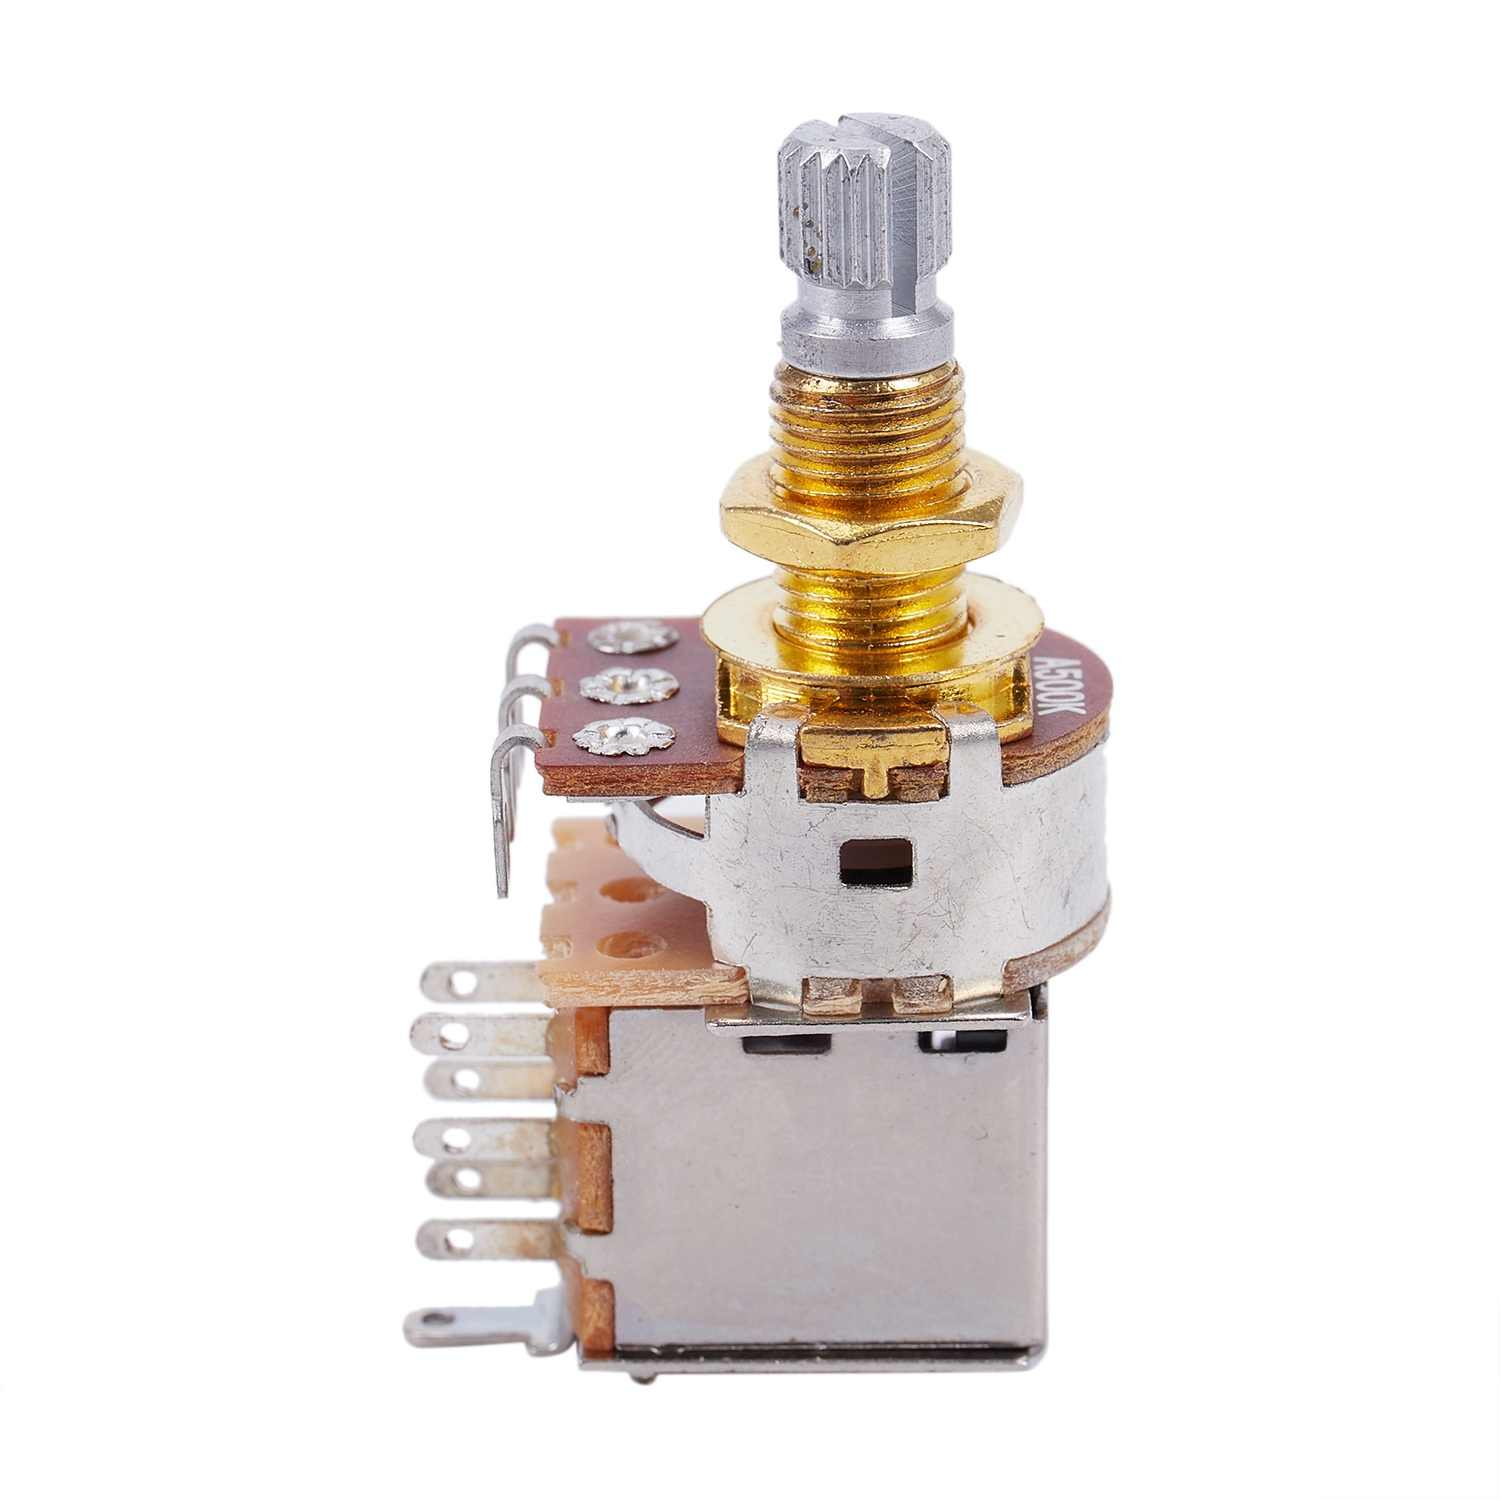 Pots de guitare 500K court arbre fendu Audio cône Push/Pull potentiomètre